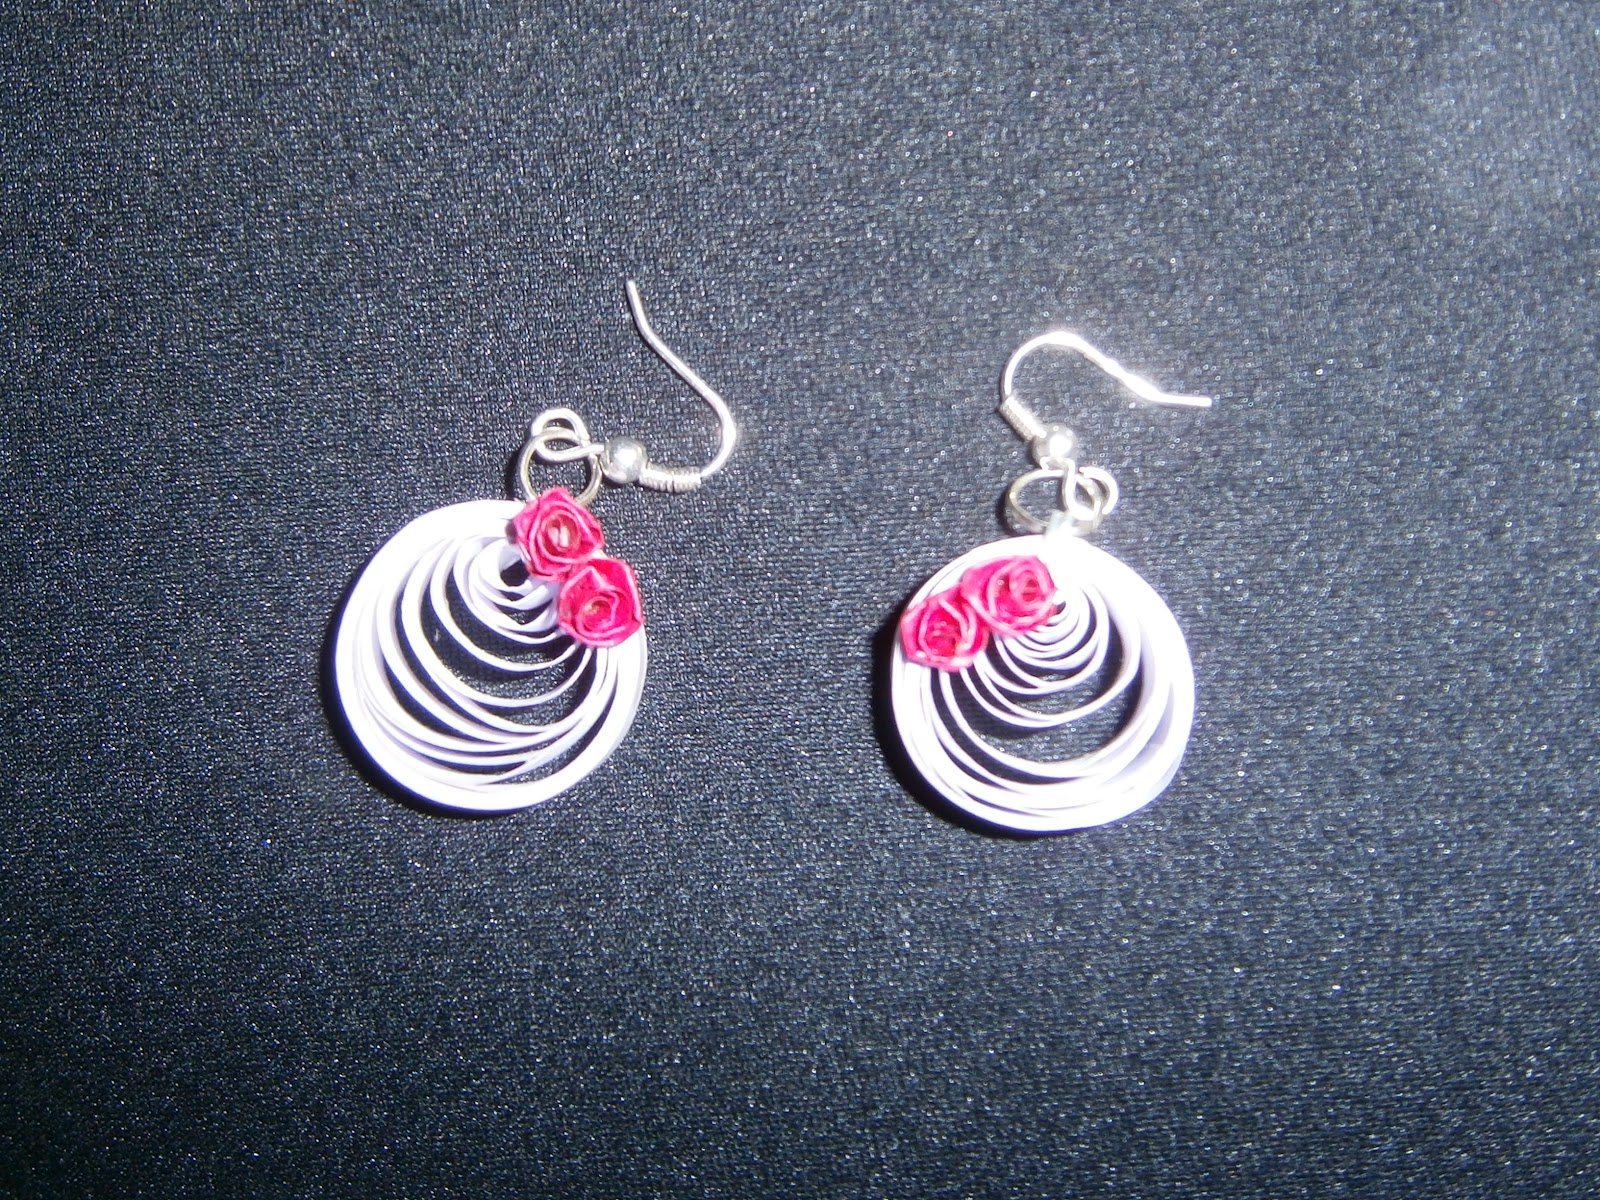 J 27 Pair Of Paper Quilled Lavender Colored Earrings Decorated With Miniature Pink Roses And Layered Varnish Coat For Strength Water Resistance